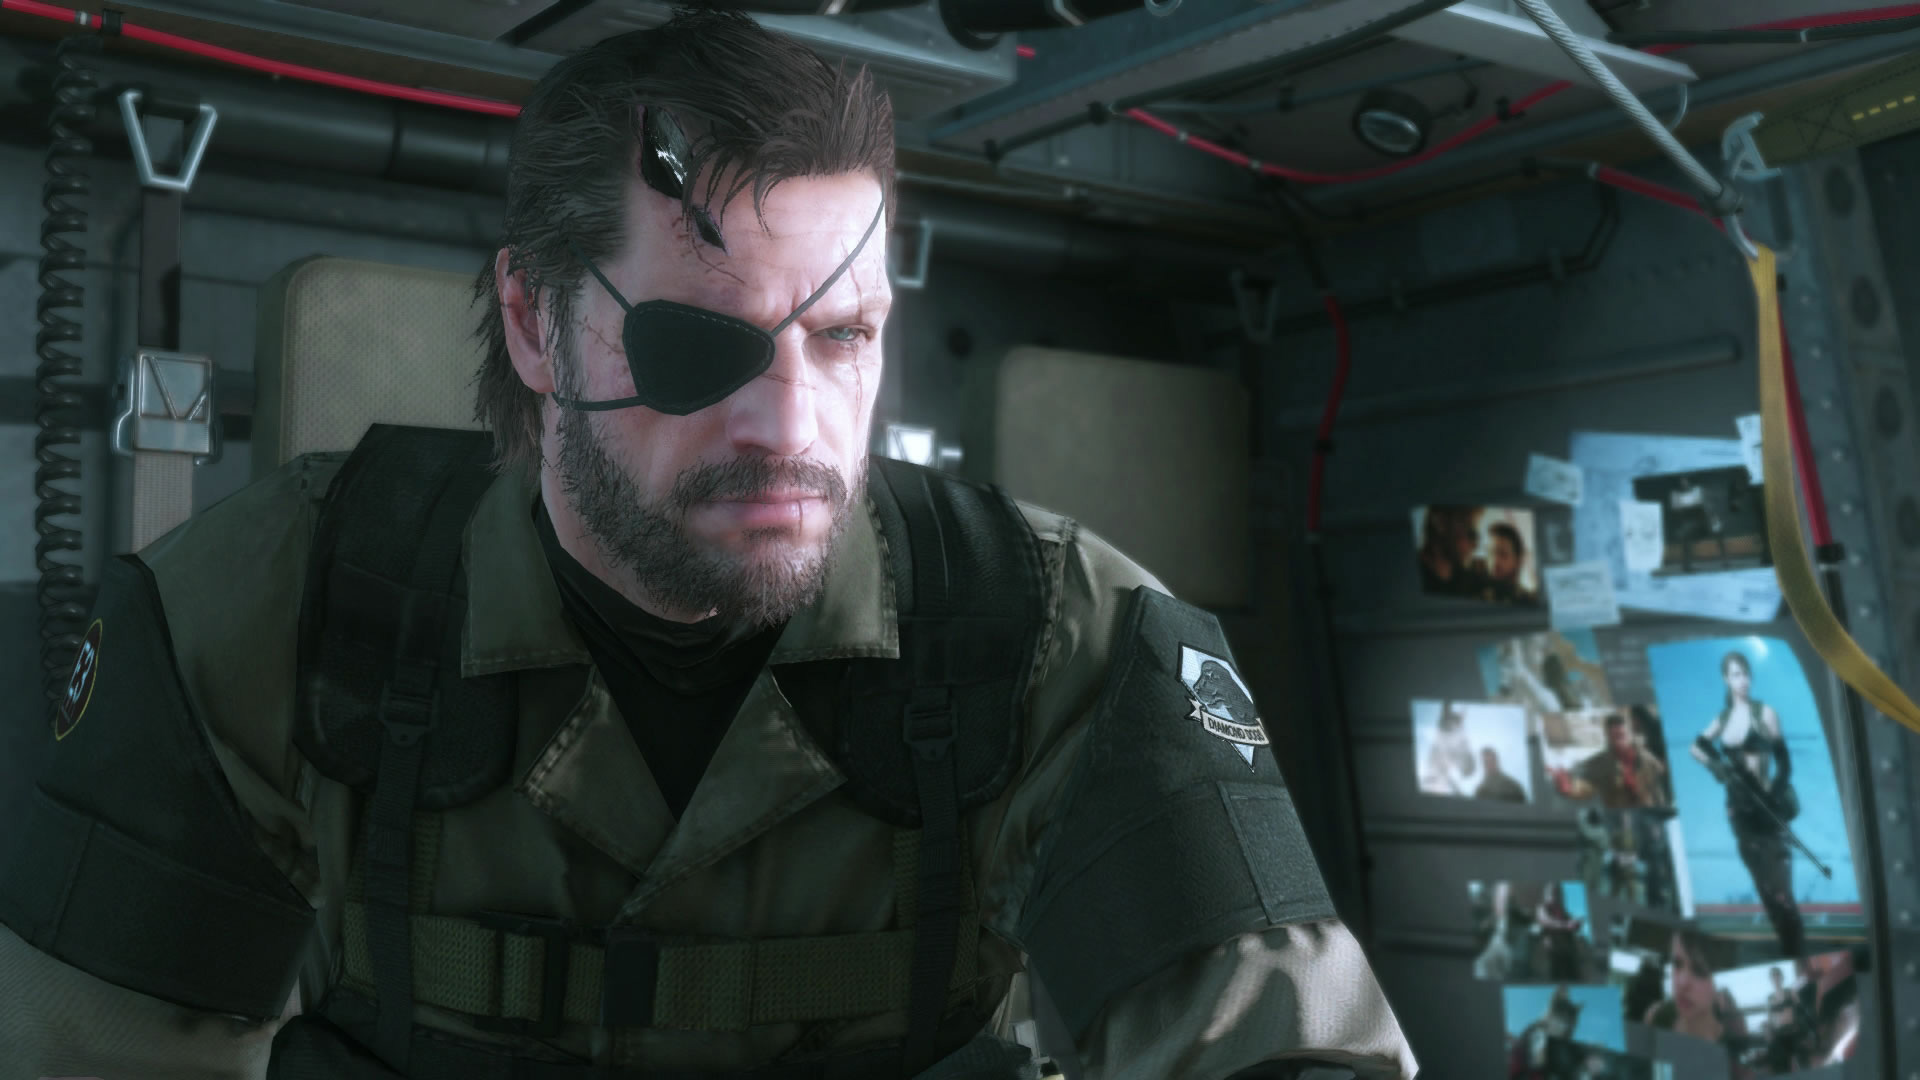 Metal-Gear-Solid-V-The-Phantom-Pain-E3-2015-Screen-Big-Boss-Chopper-Pictures